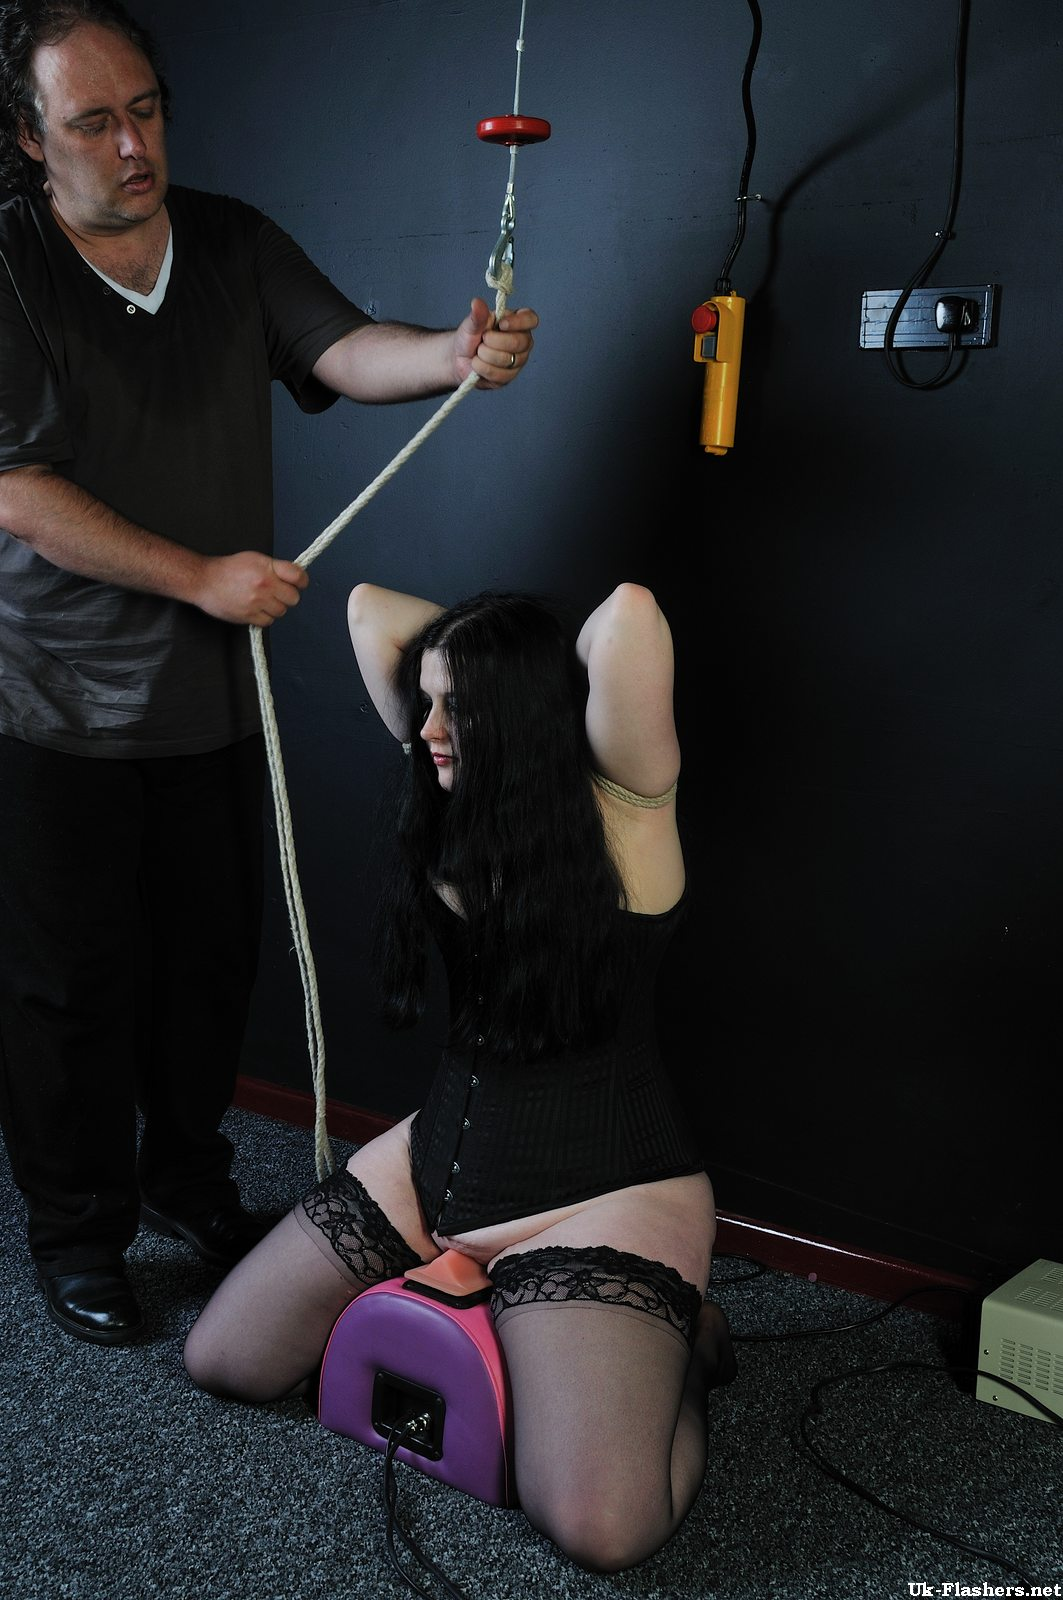 Domestic Discipline And Spanking For Young Naughty Girls